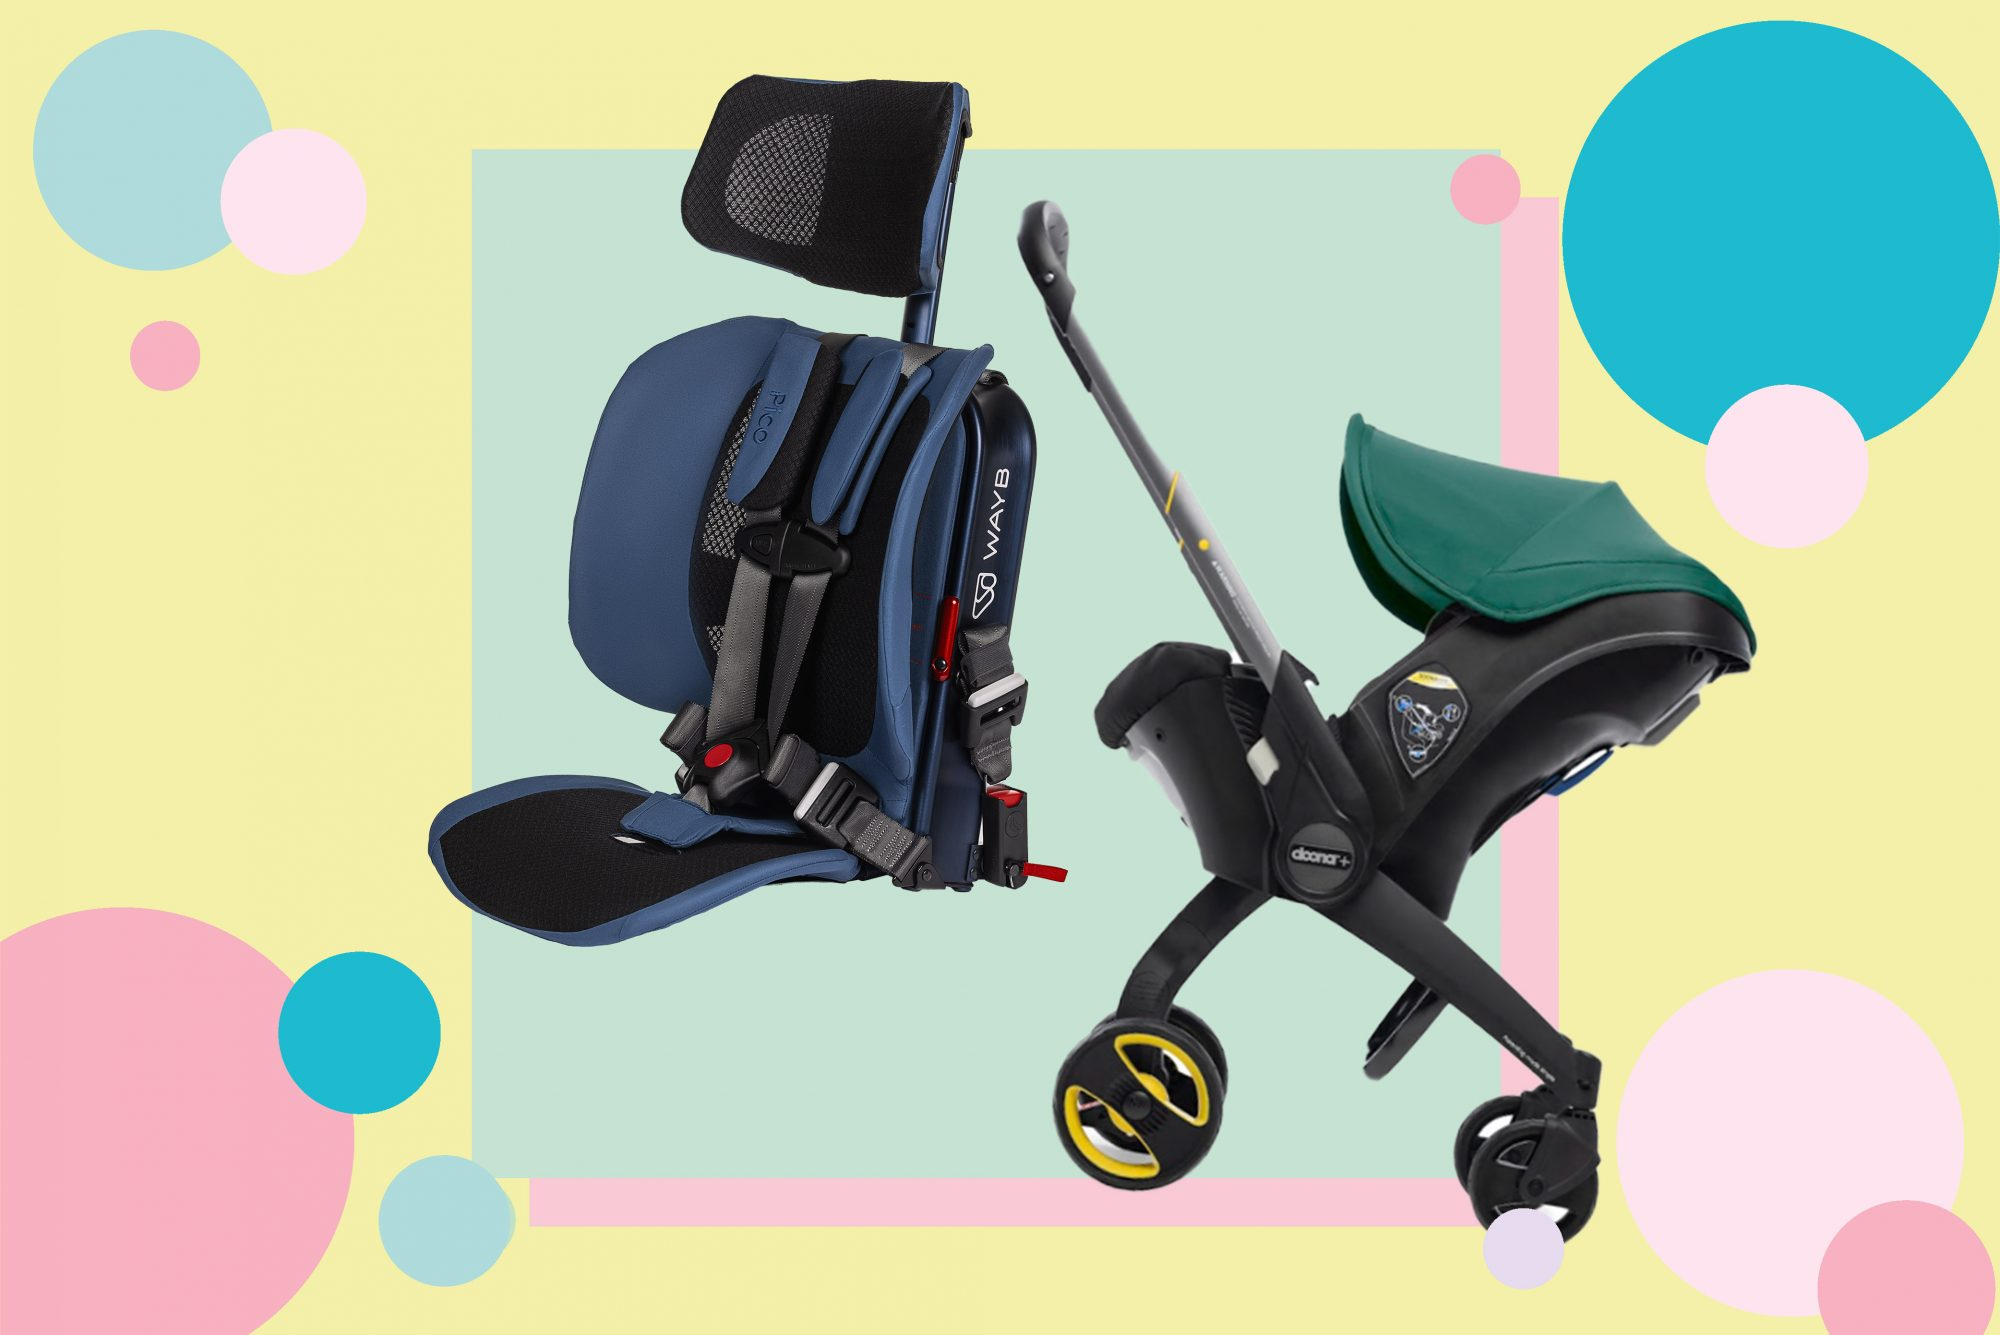 An image of travel gear for parents.